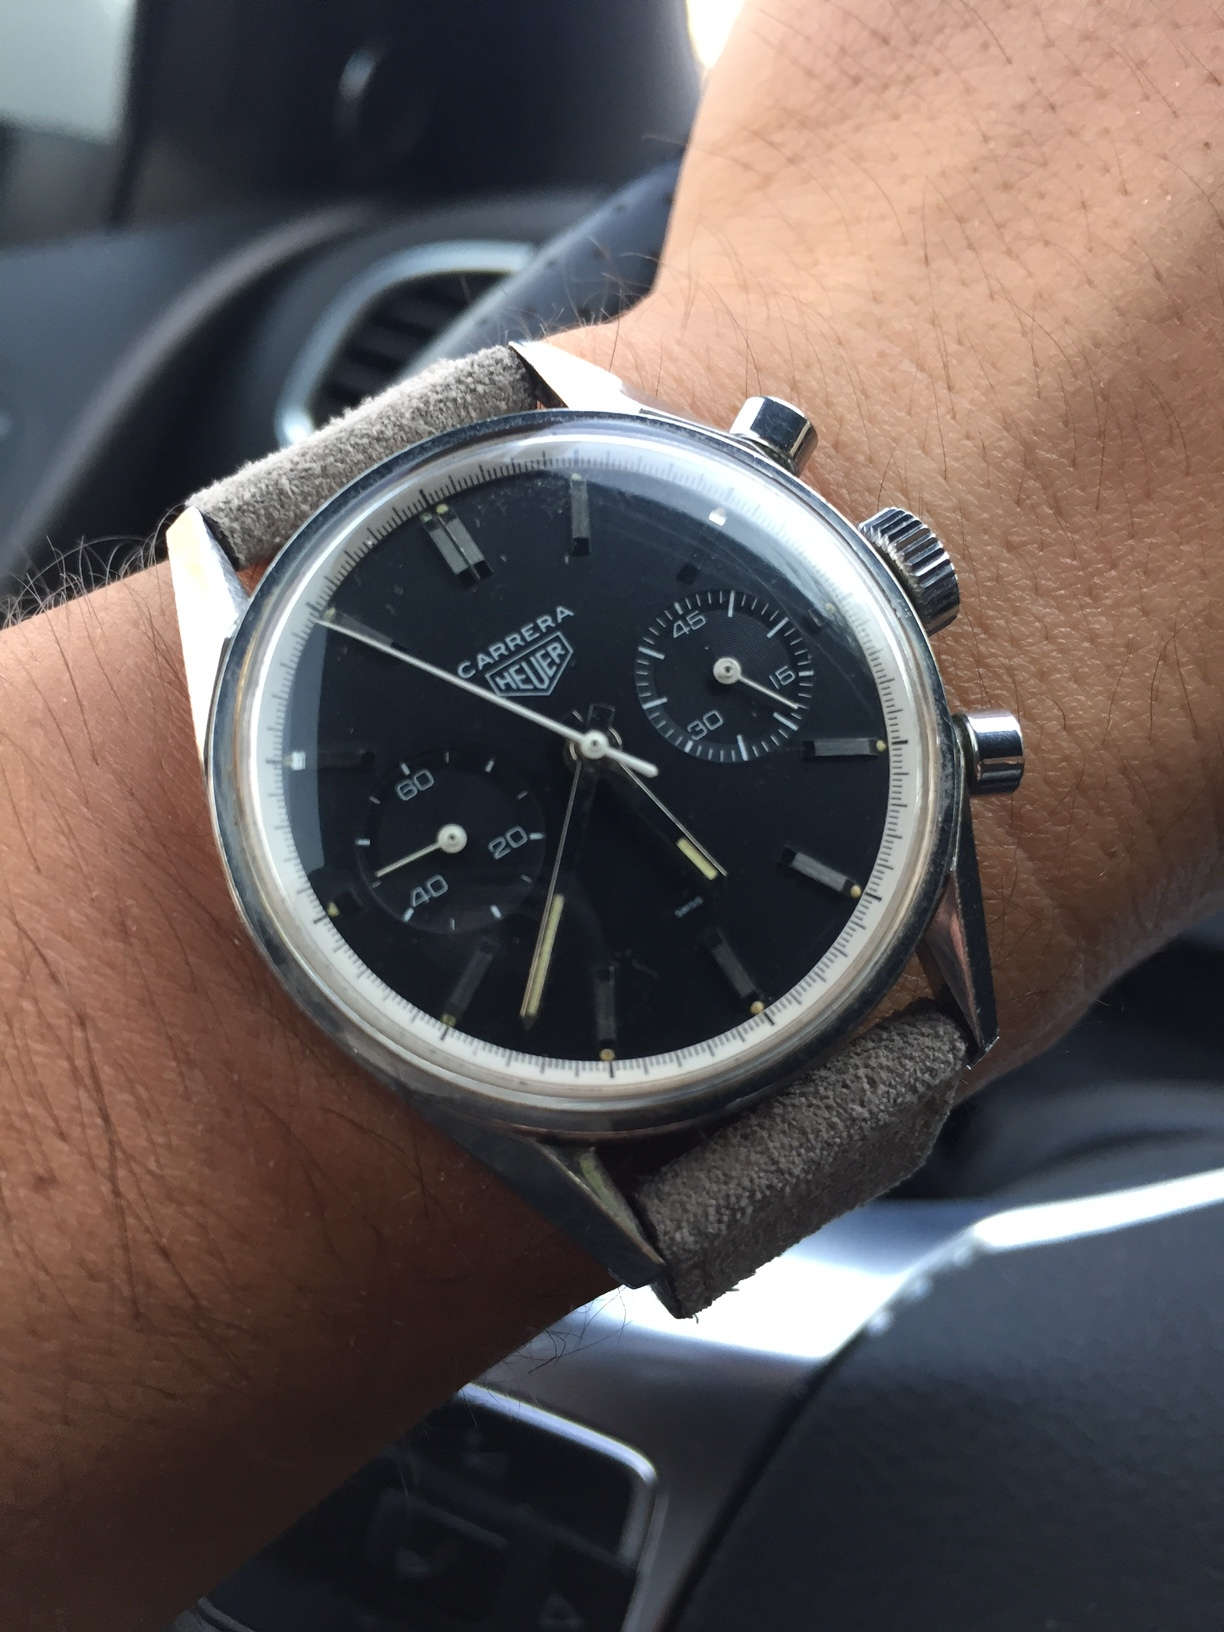 This Carrera was my first big watch purchase, and one I'll hold onto forever. Jack Heuer's design principles and the history behind how this watch came about really appealed to me.